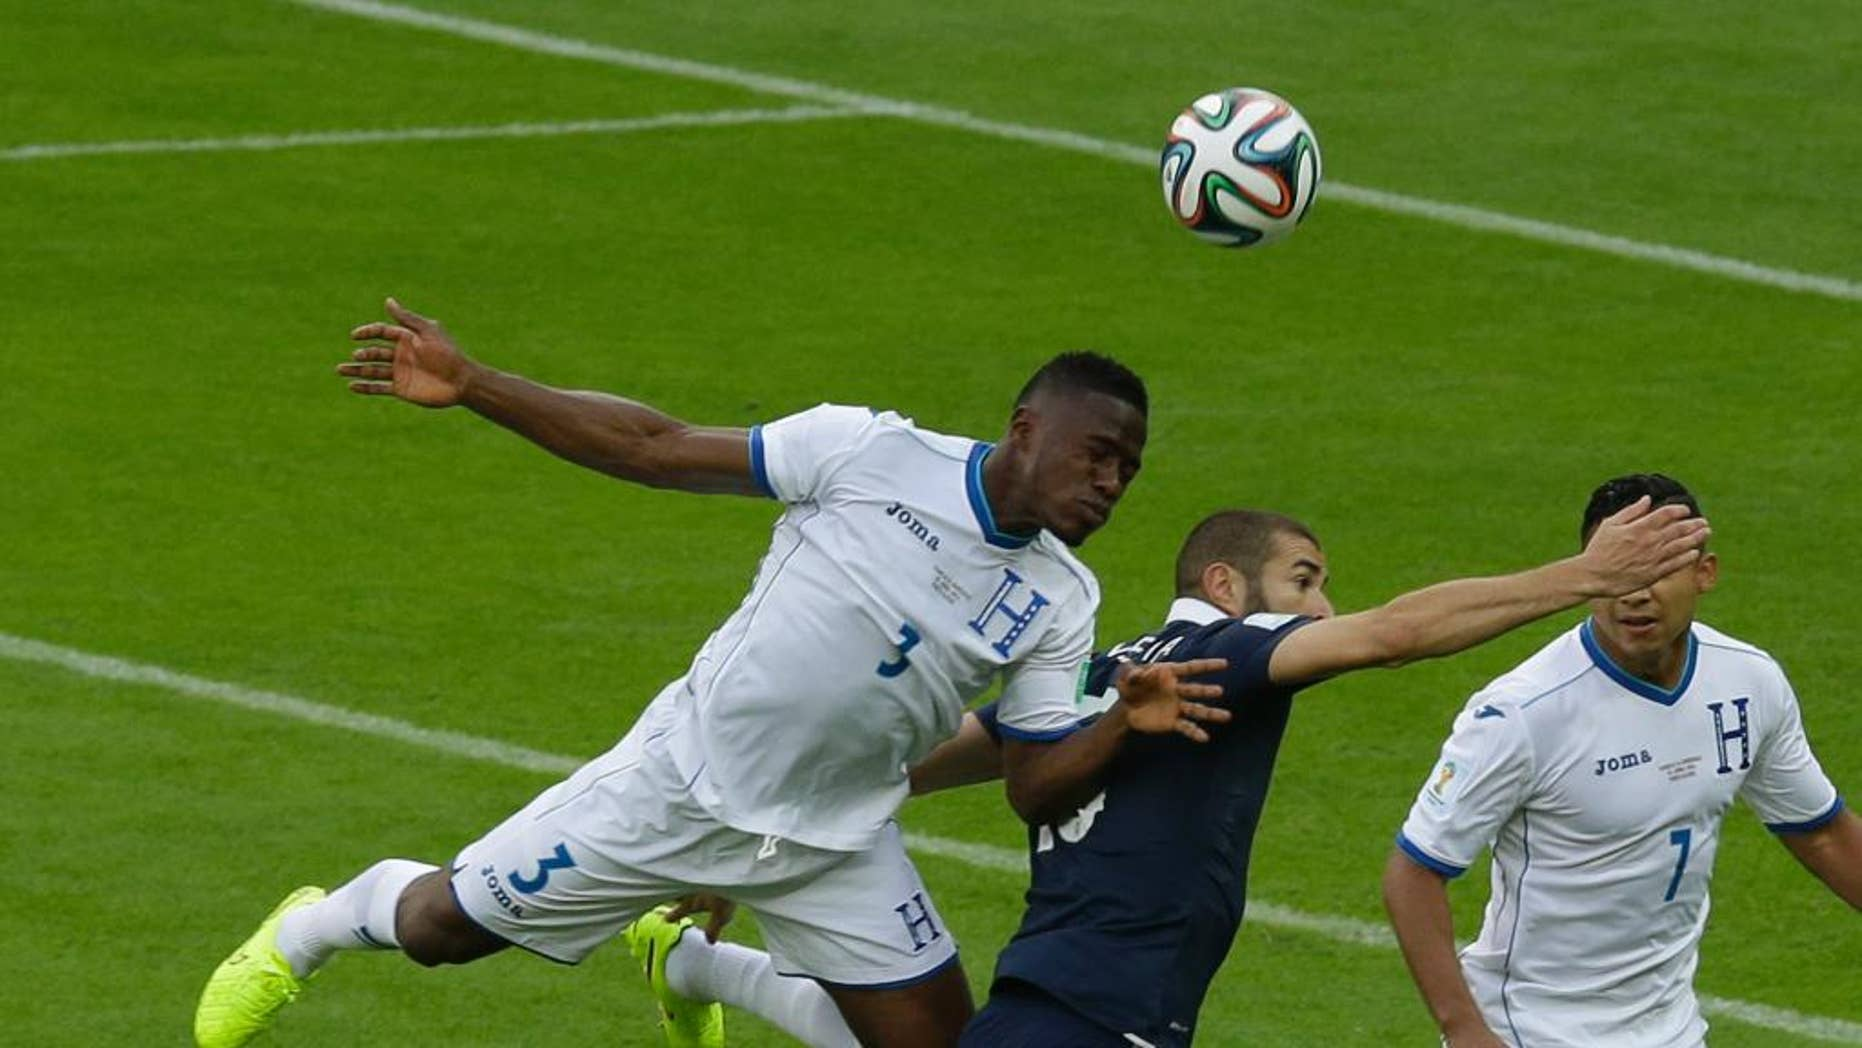 Honduras' Maynor Figueroa, left, and France's Karim Benzema challenge for the ball during the group E World Cup soccer match between France and Honduras at the Estadio Beira-Rio in Porto Alegre, Brazil, Sunday, June 15, 2014. (AP Photo/Andrew Medichini)